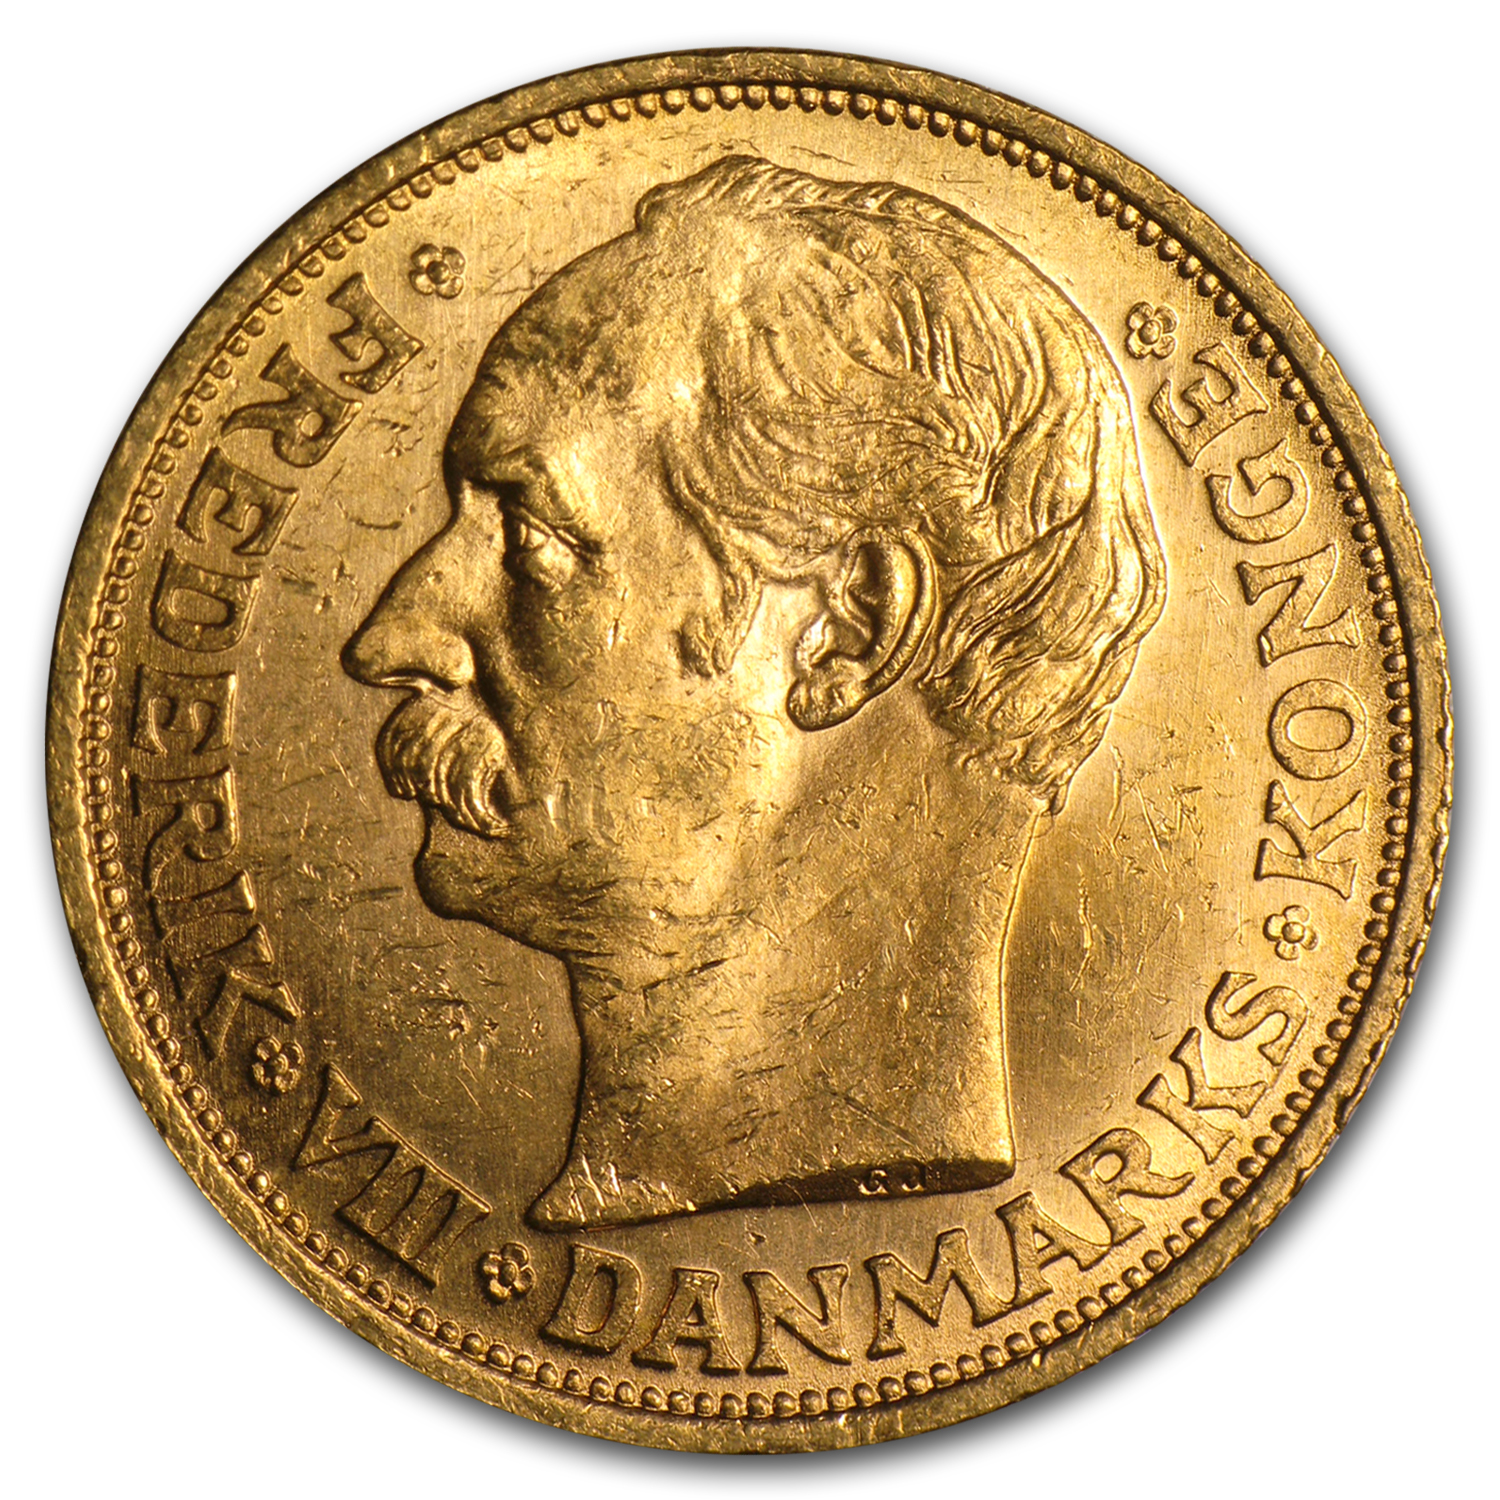 Denmark Gold 20 Kroner (Almost Uncirculated)